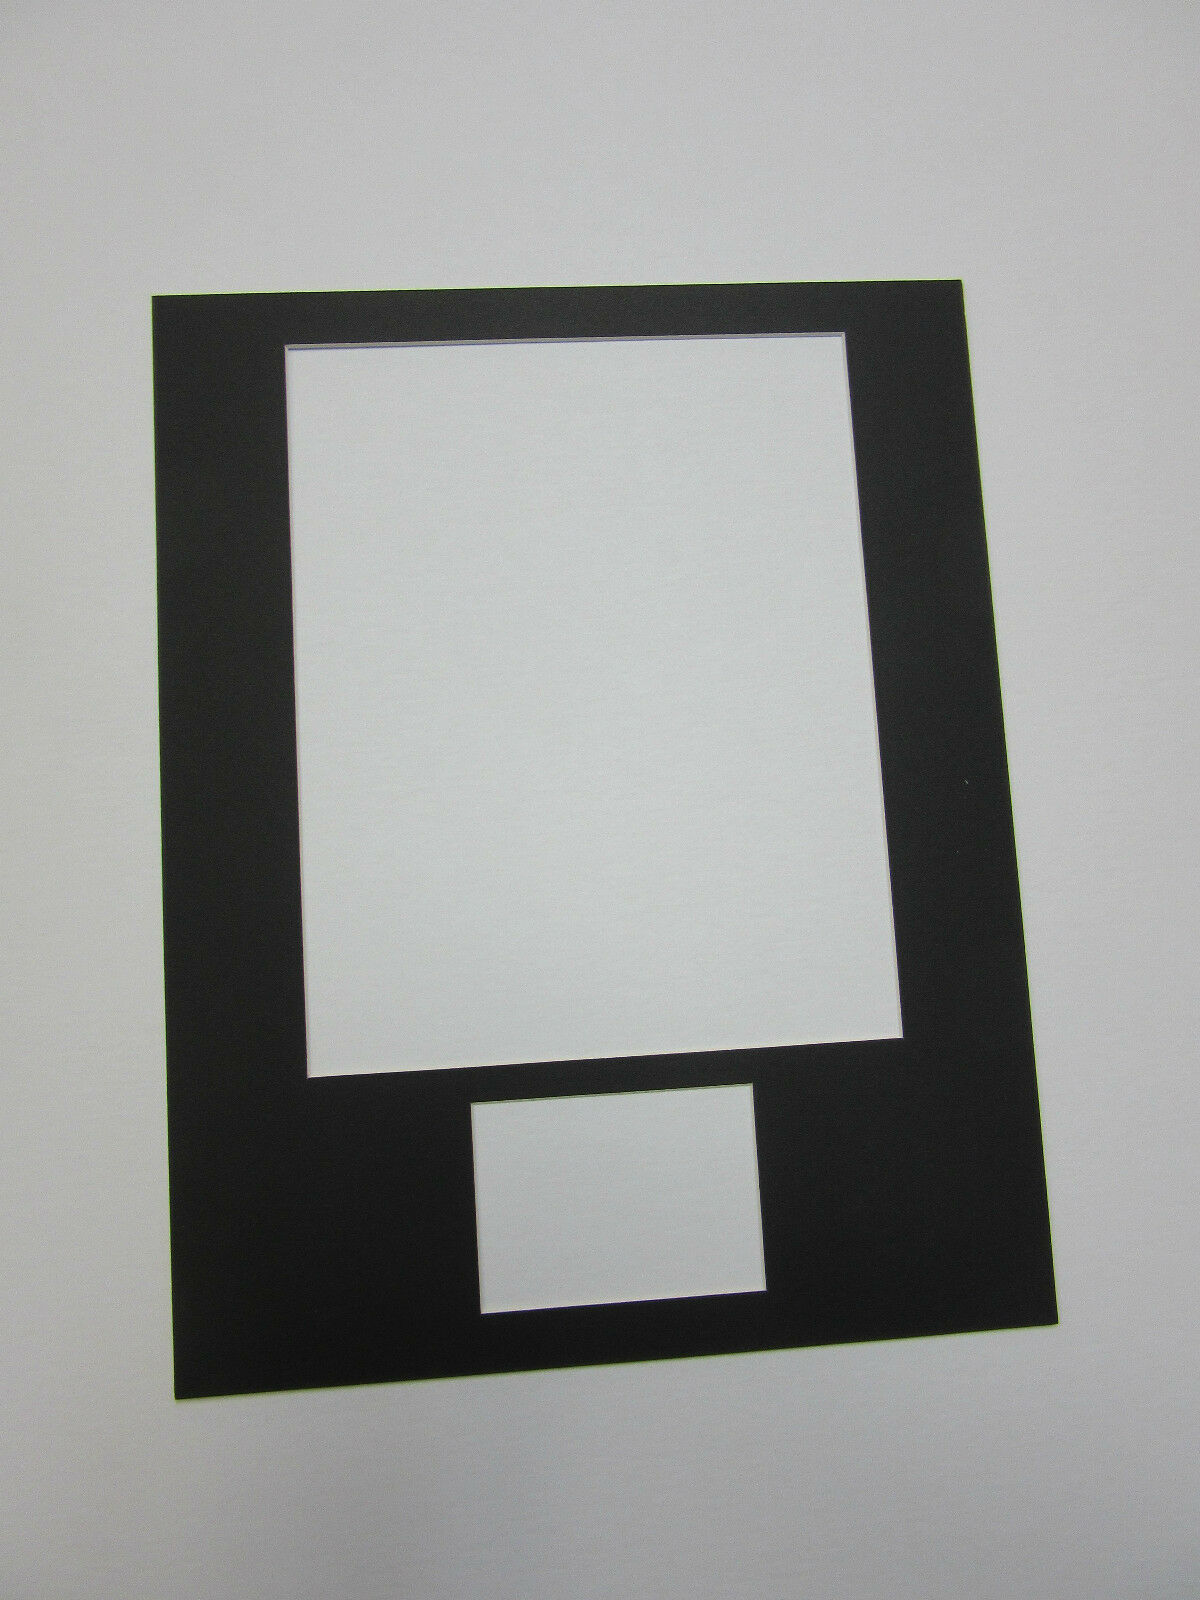 PICTURE FRAME MAT 11x14 for 8x10 photo and 2x4.25 exact set of 5 ...